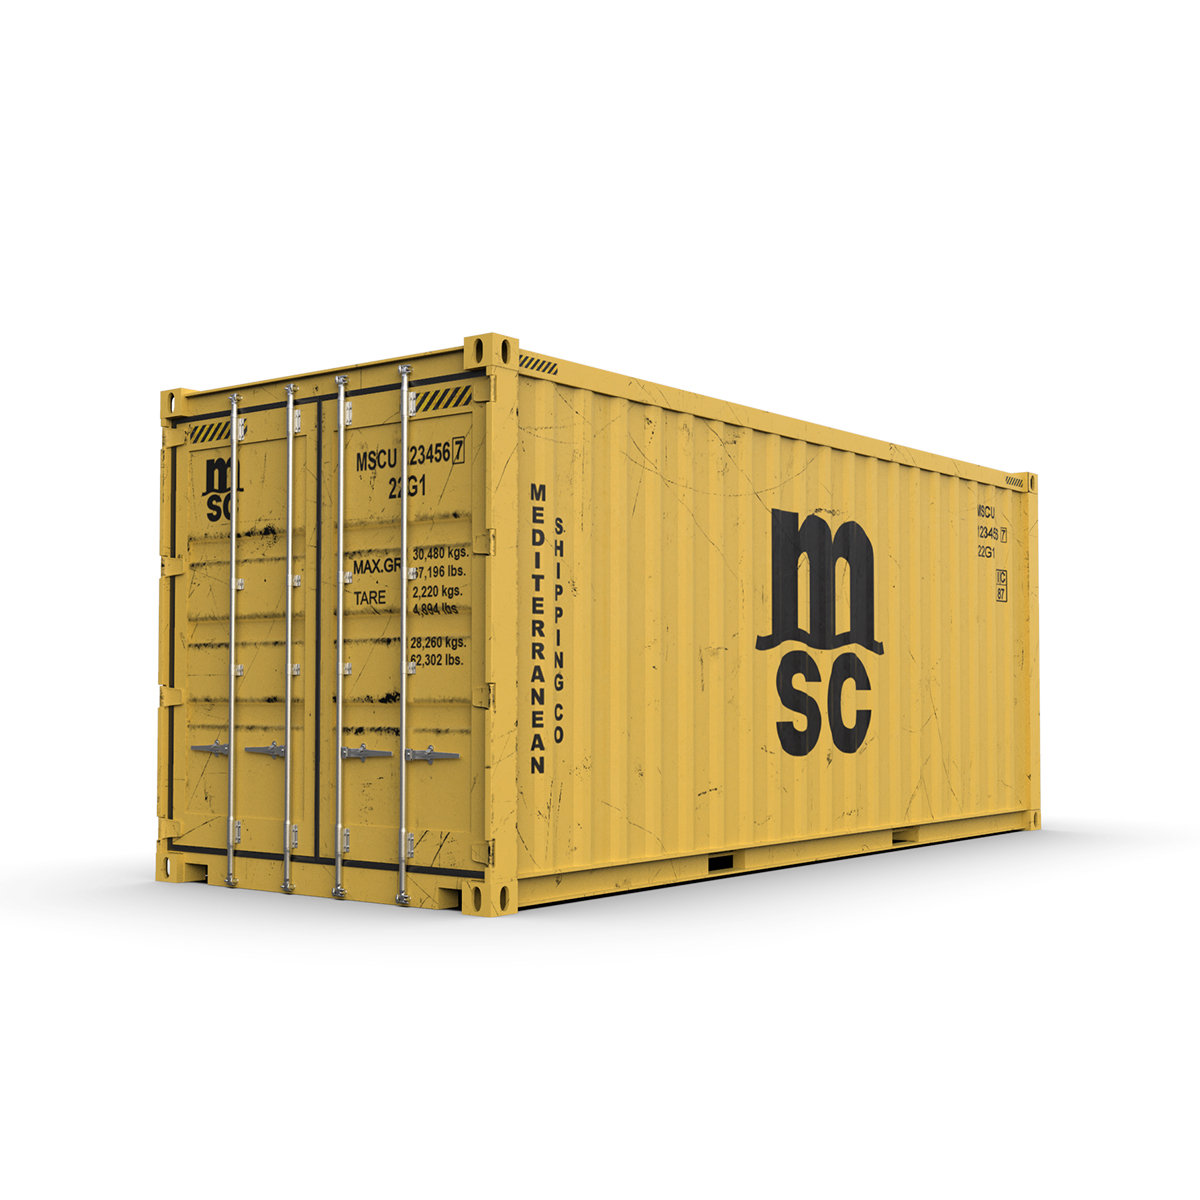 20 stopala msc standardni transportni kontejner 3d model 3ds max fbx ma mb obj 278382